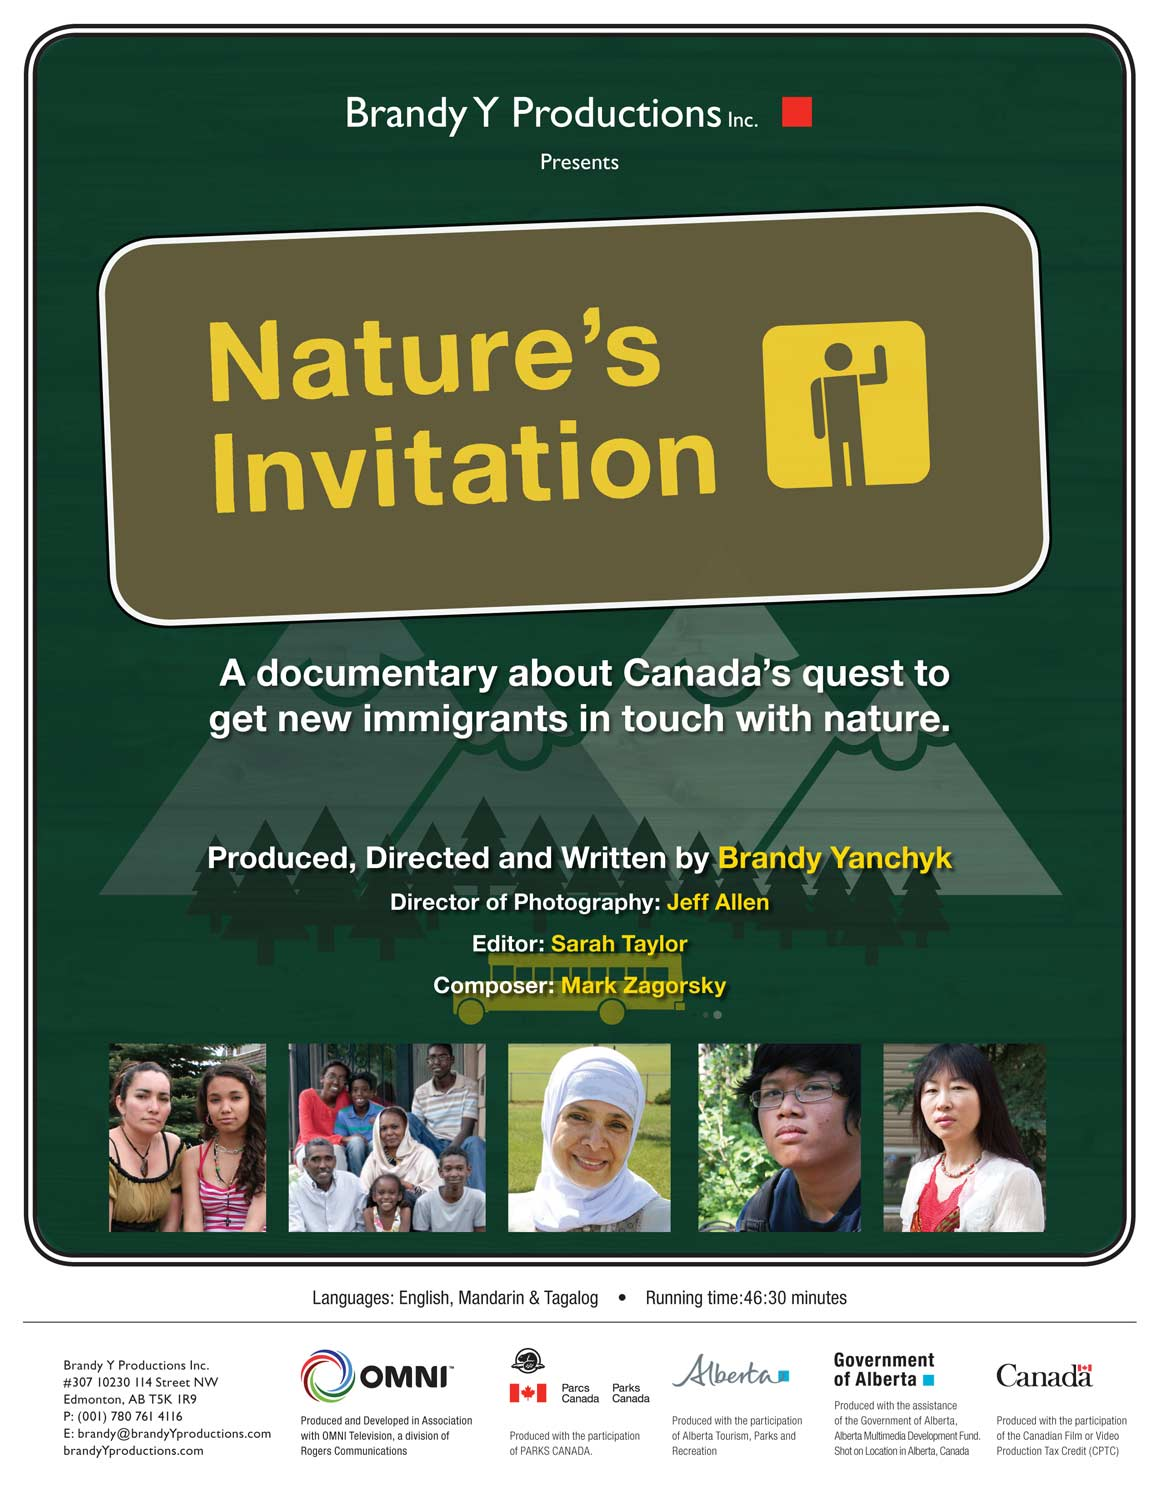 BYP-Natures_invitation-8X11-POSTER-HR.jpg